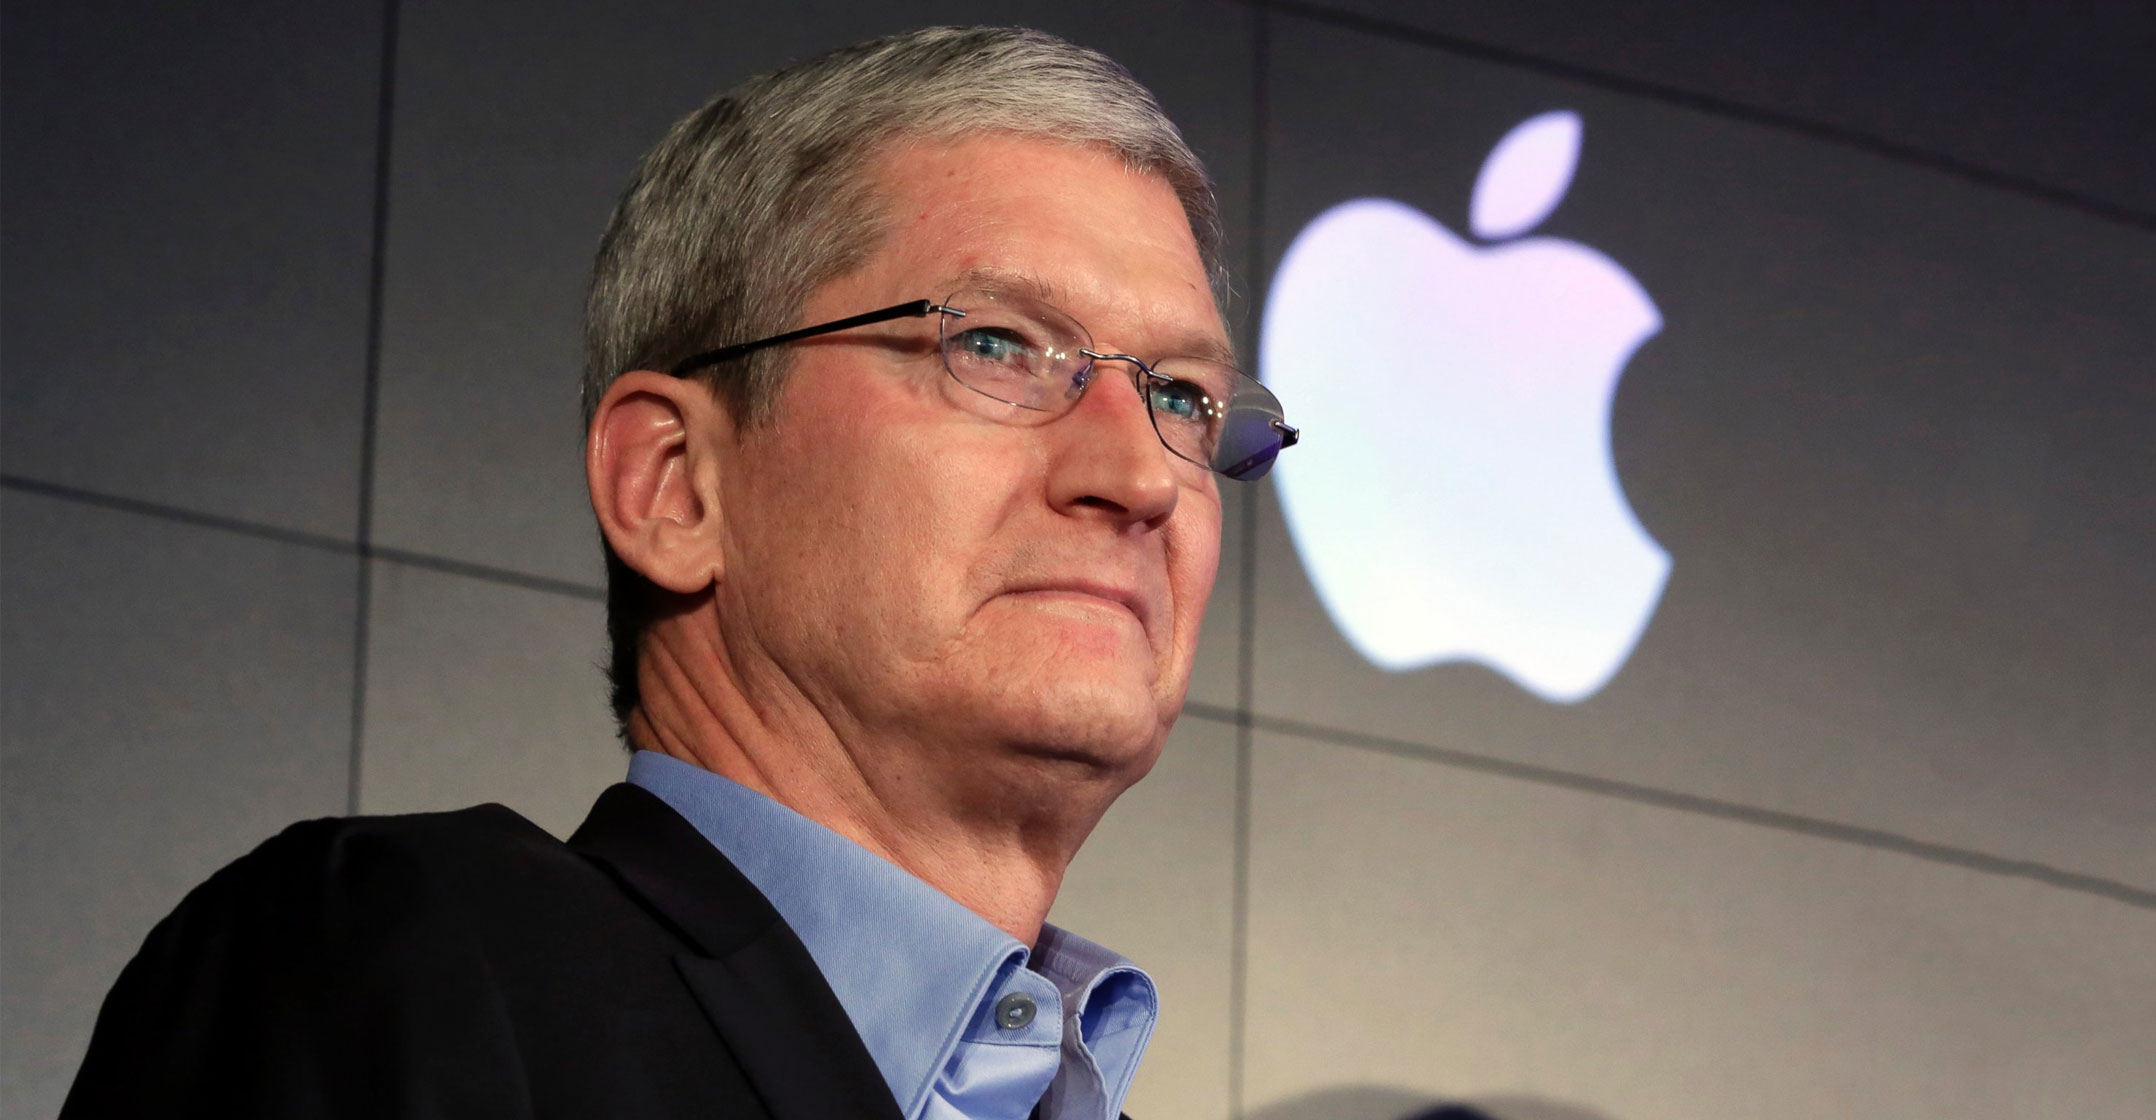 Who might replace Tim Cook as Apple CEO - TechCentral